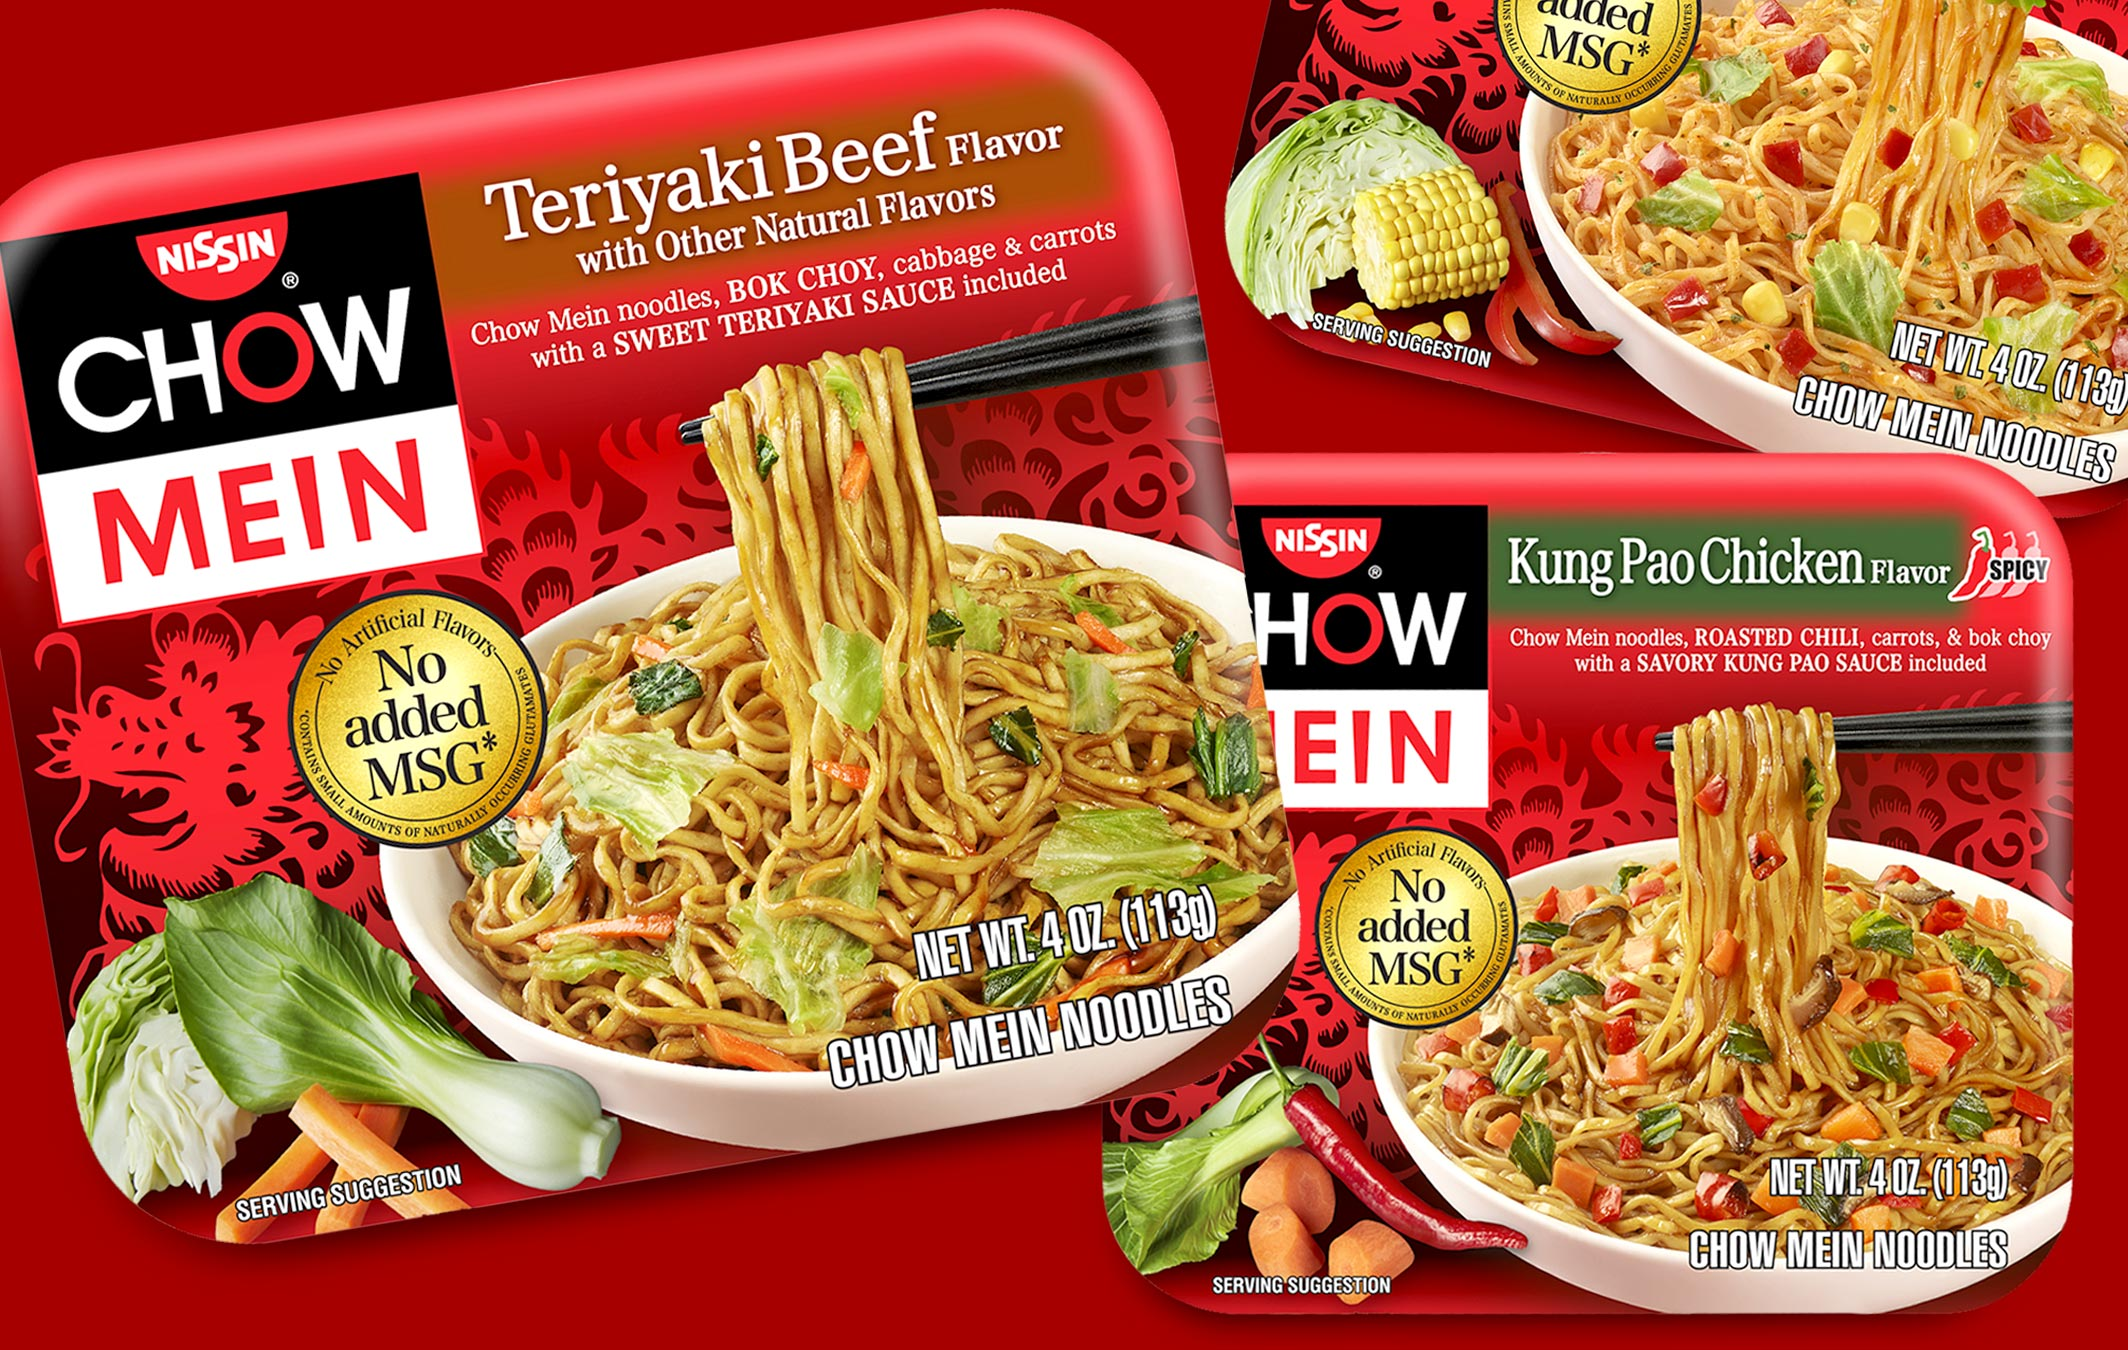 Nissin Chow Mein